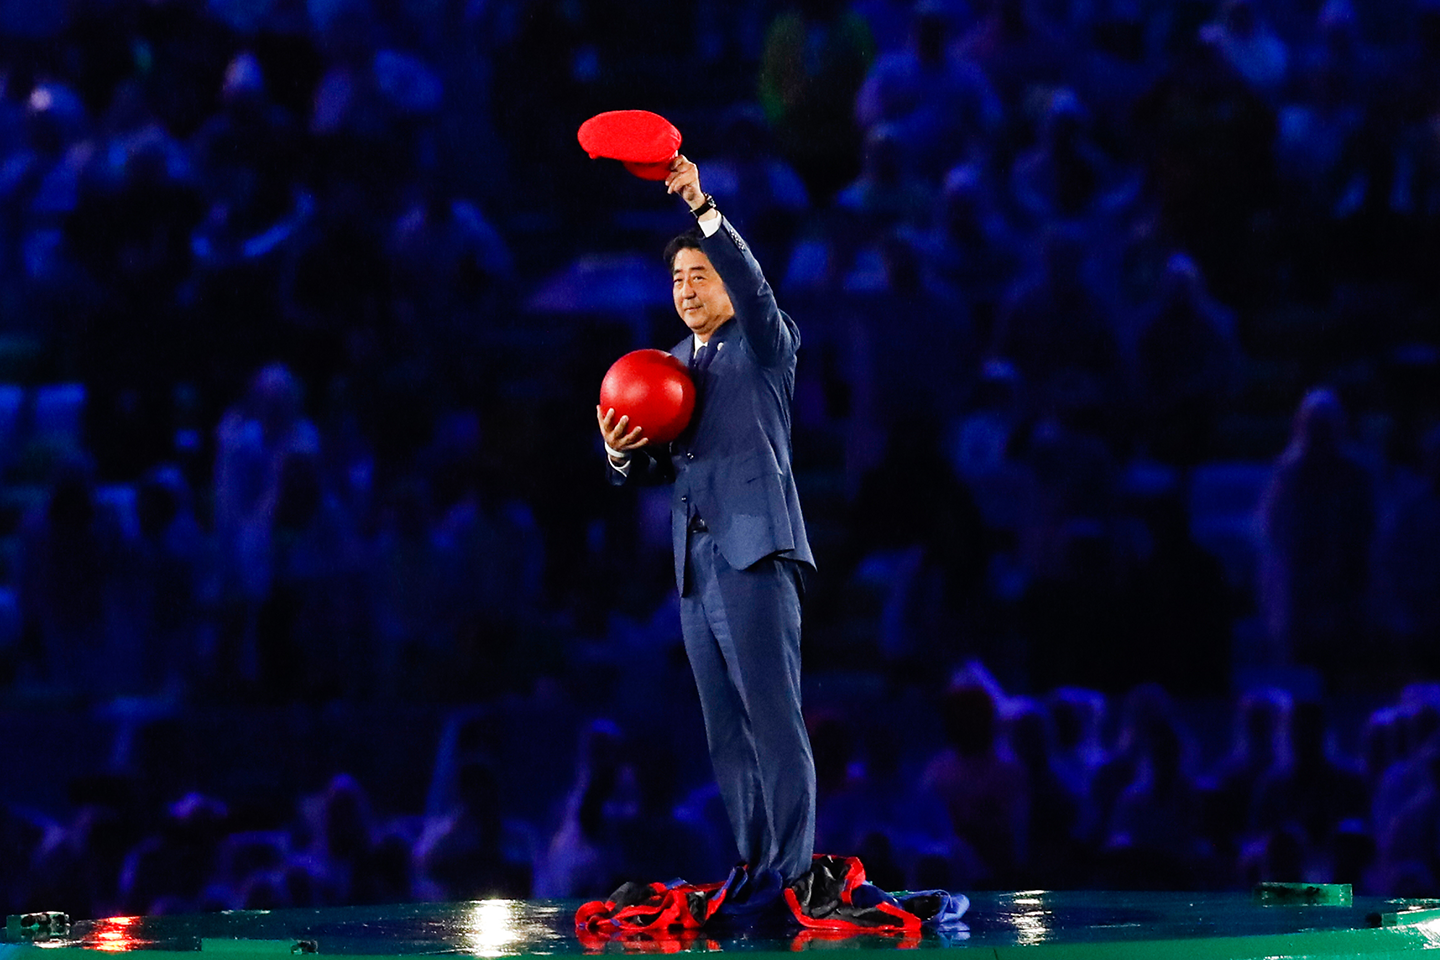 shinzo abe as super mario during the rio 2016 olympics opening ceremony